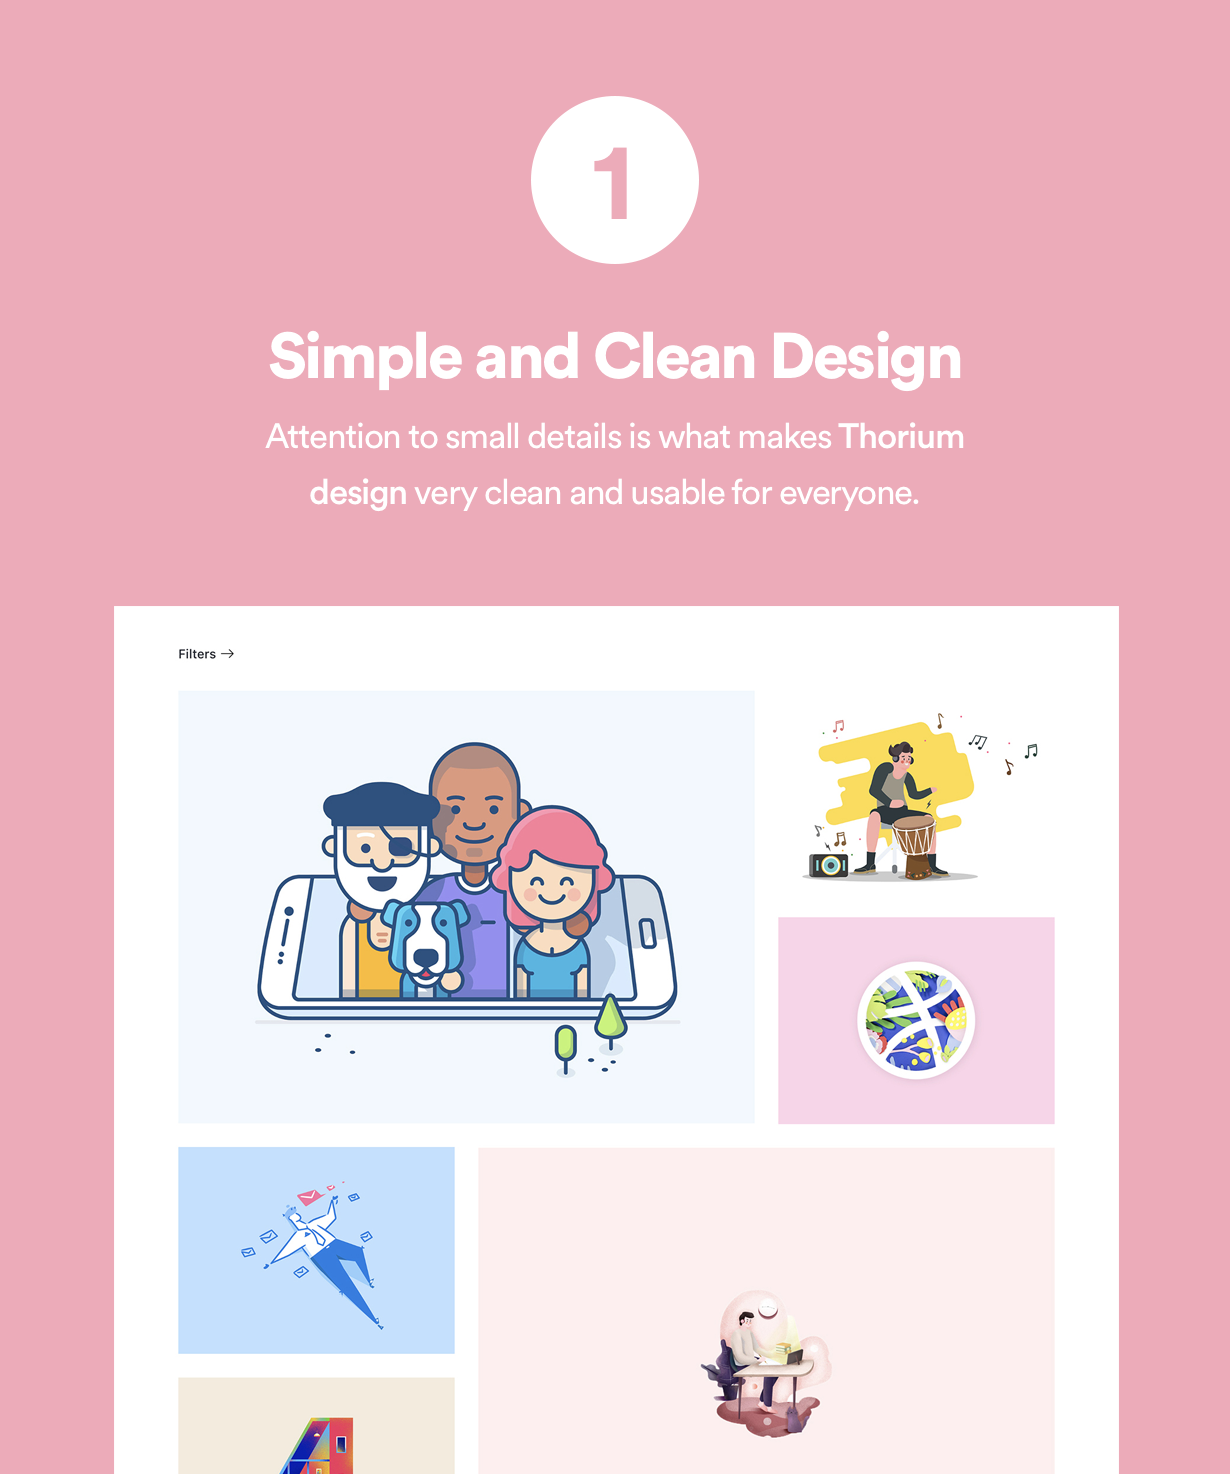 Simple and Clean design